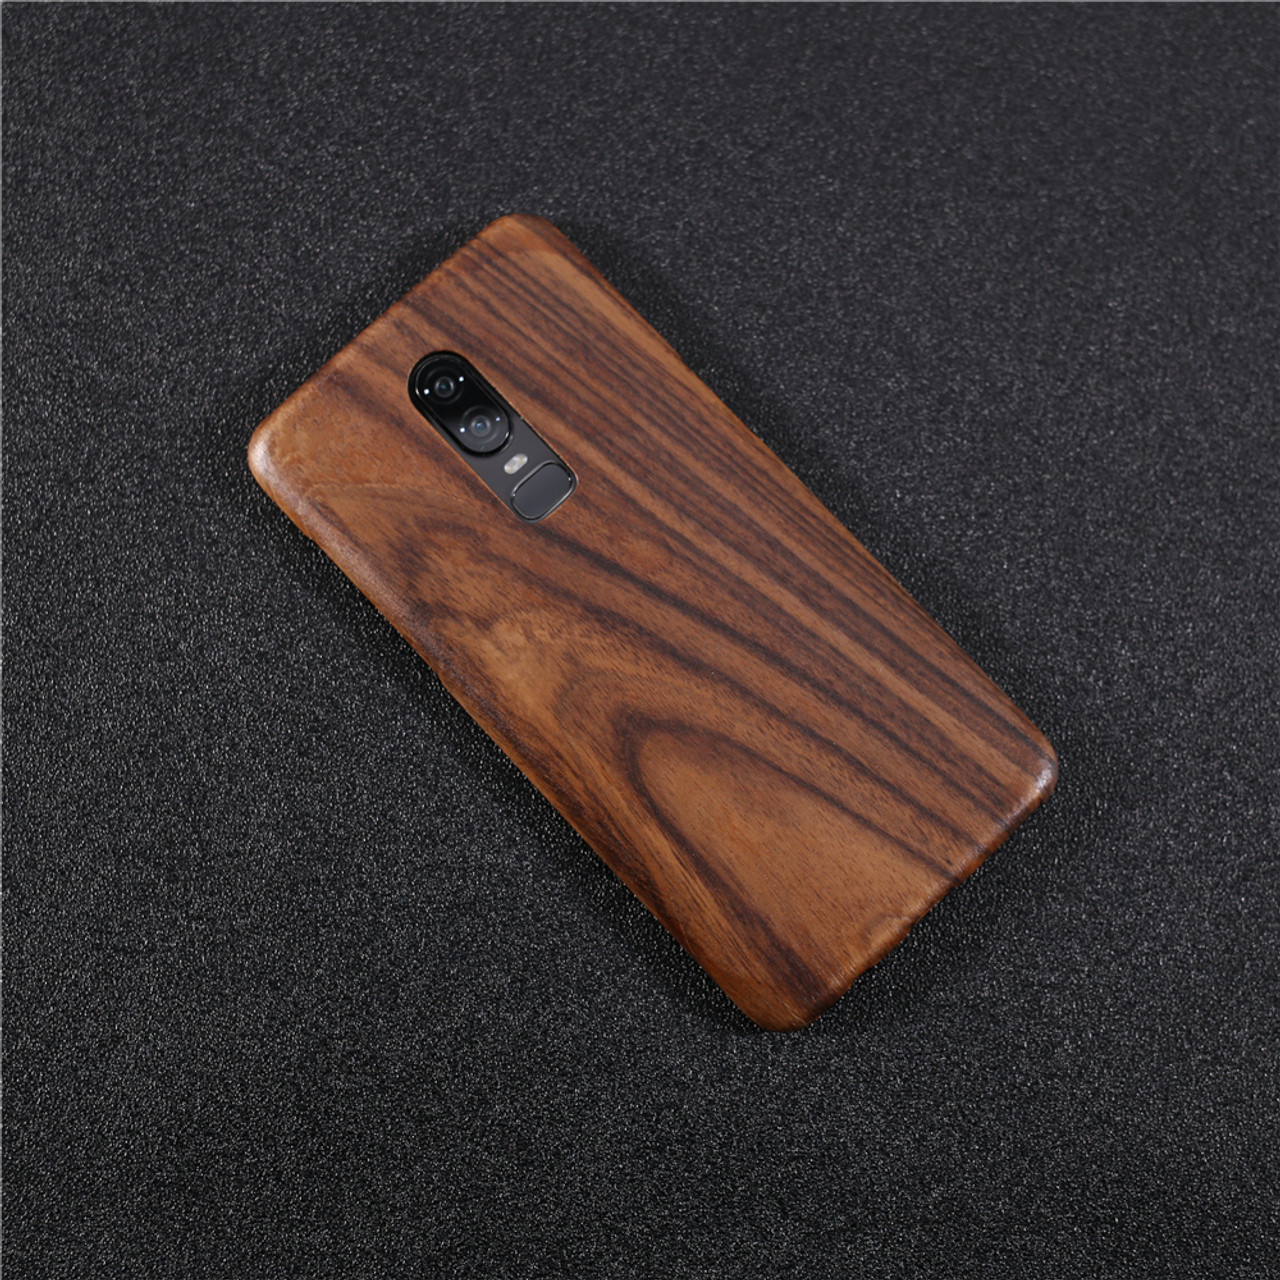 cheaper 20514 d3afc oneplus 6 case catman original genuine real wood funda bamboo rosewood  luxury back cover phone shell one plus 6 case